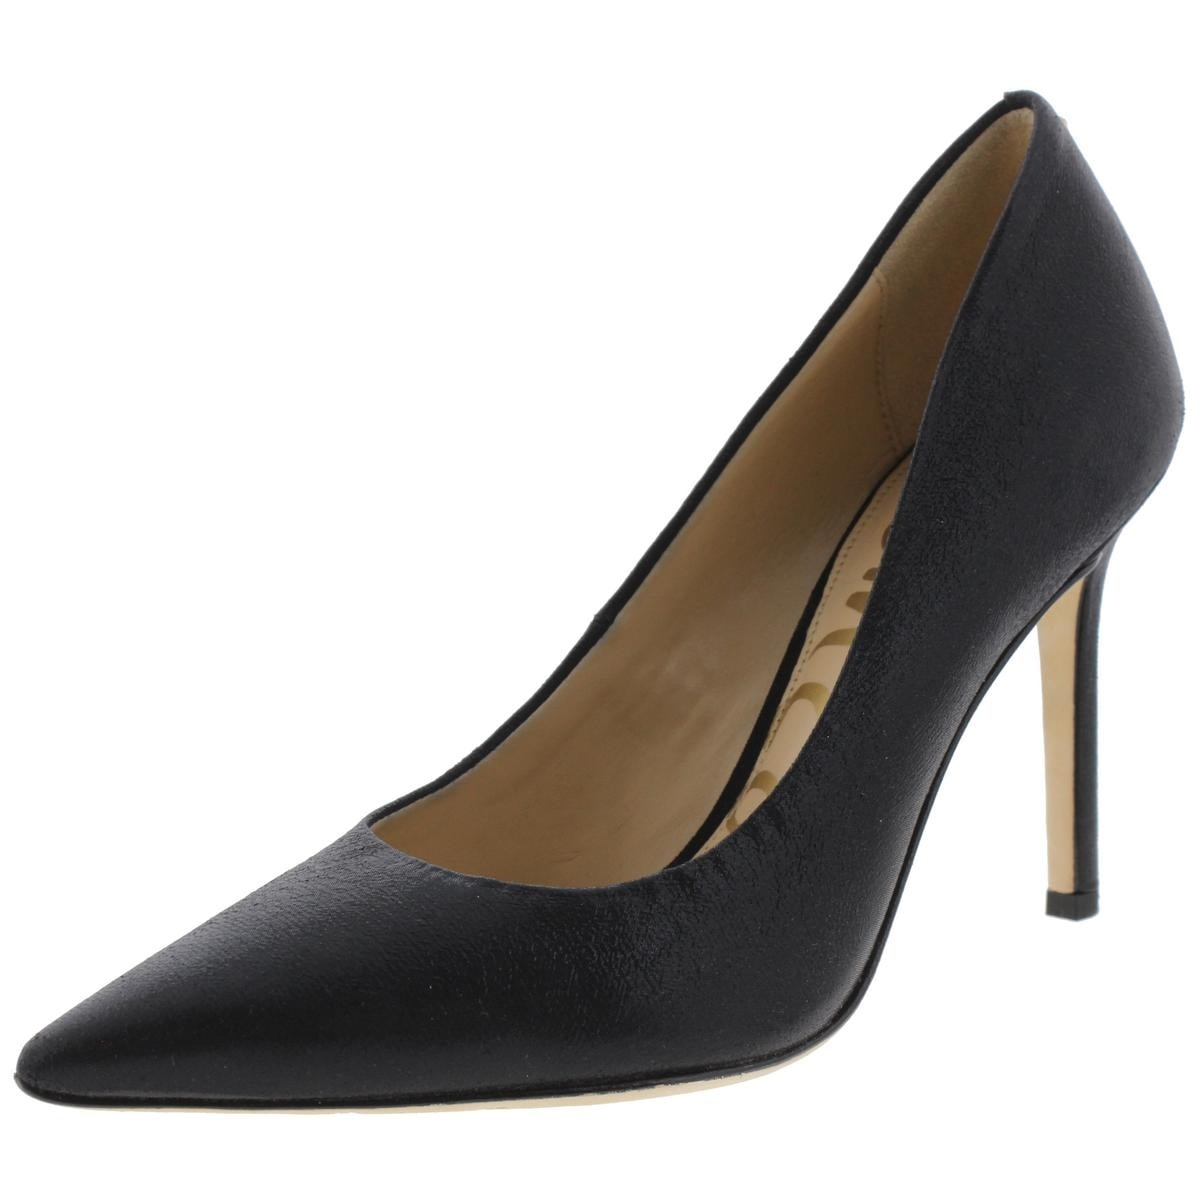 d88970ddc22769 Shop Sam Edelman Womens Hazel Pumps - Free Shipping On Orders Over  45 -  Overstock - 14032218